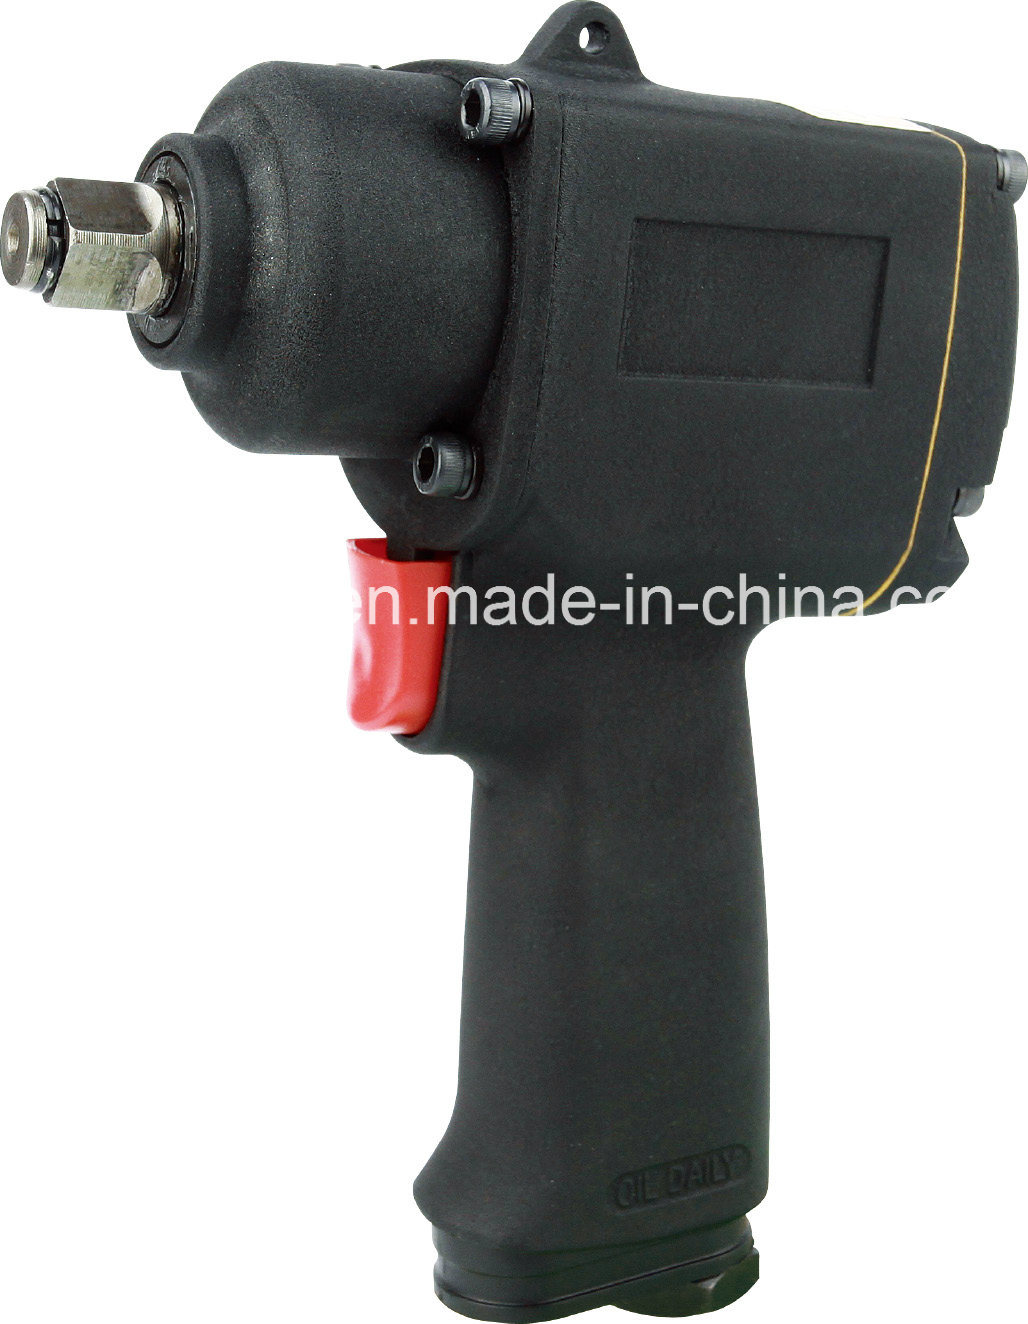 Air Impact Wrench (Small)